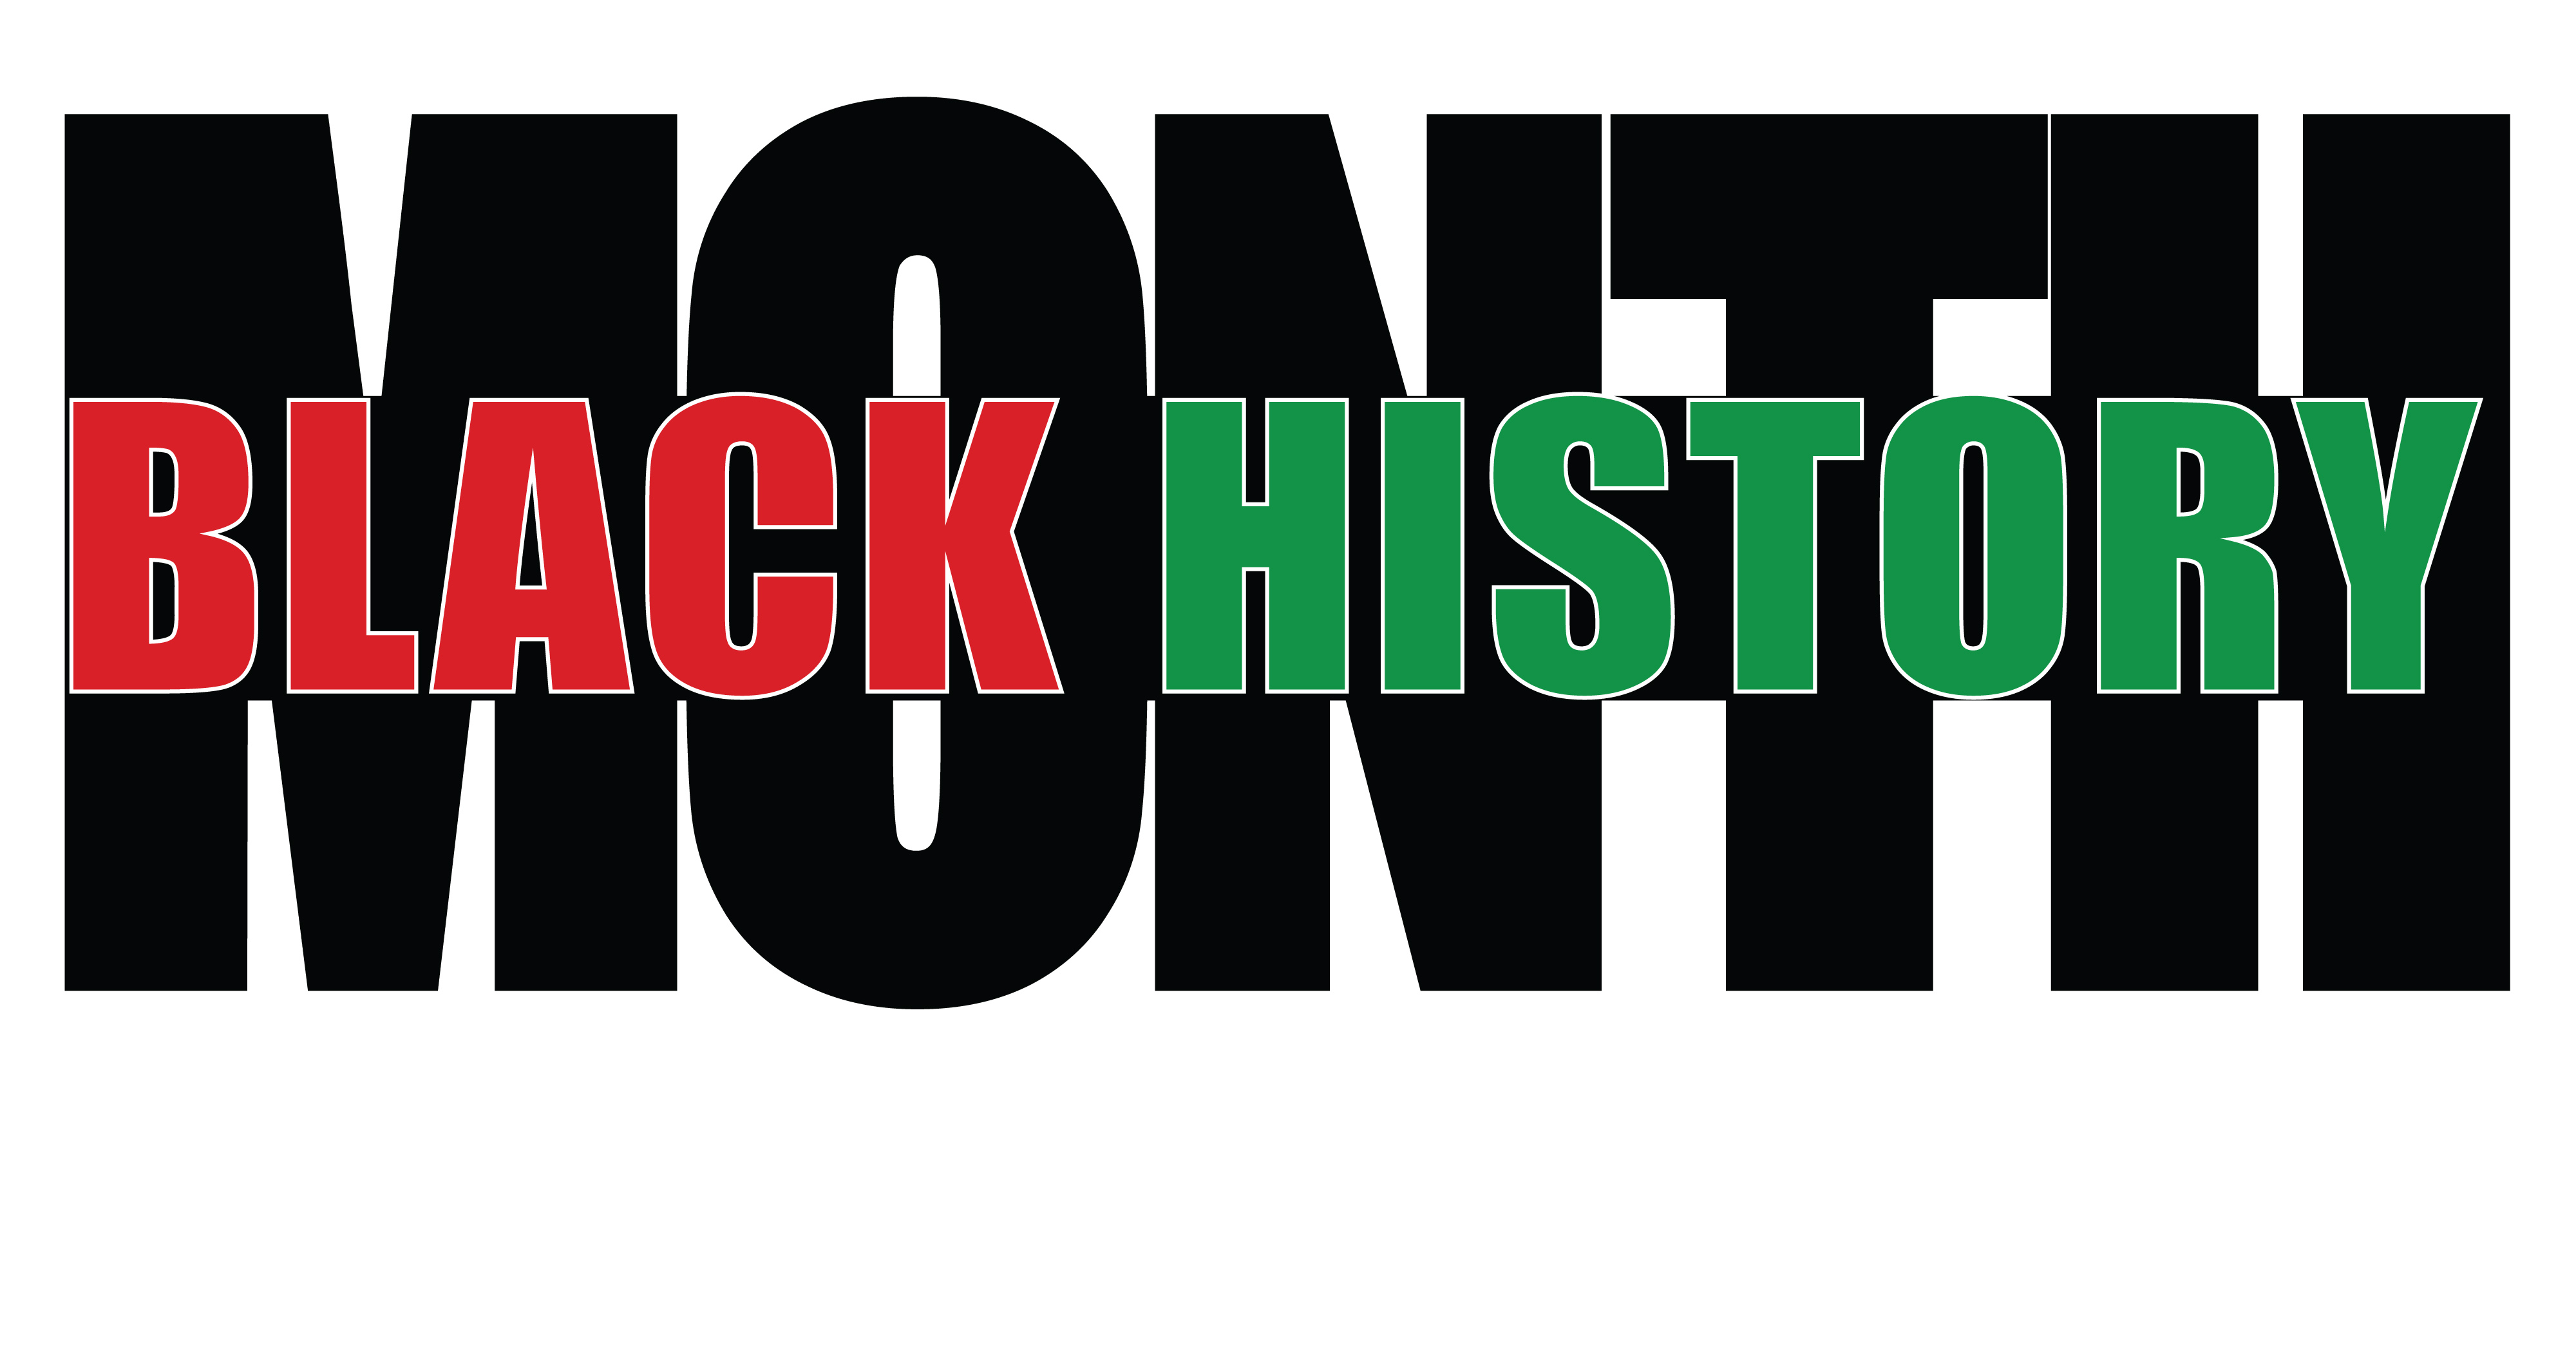 Black History Month Clipart 4000x2099